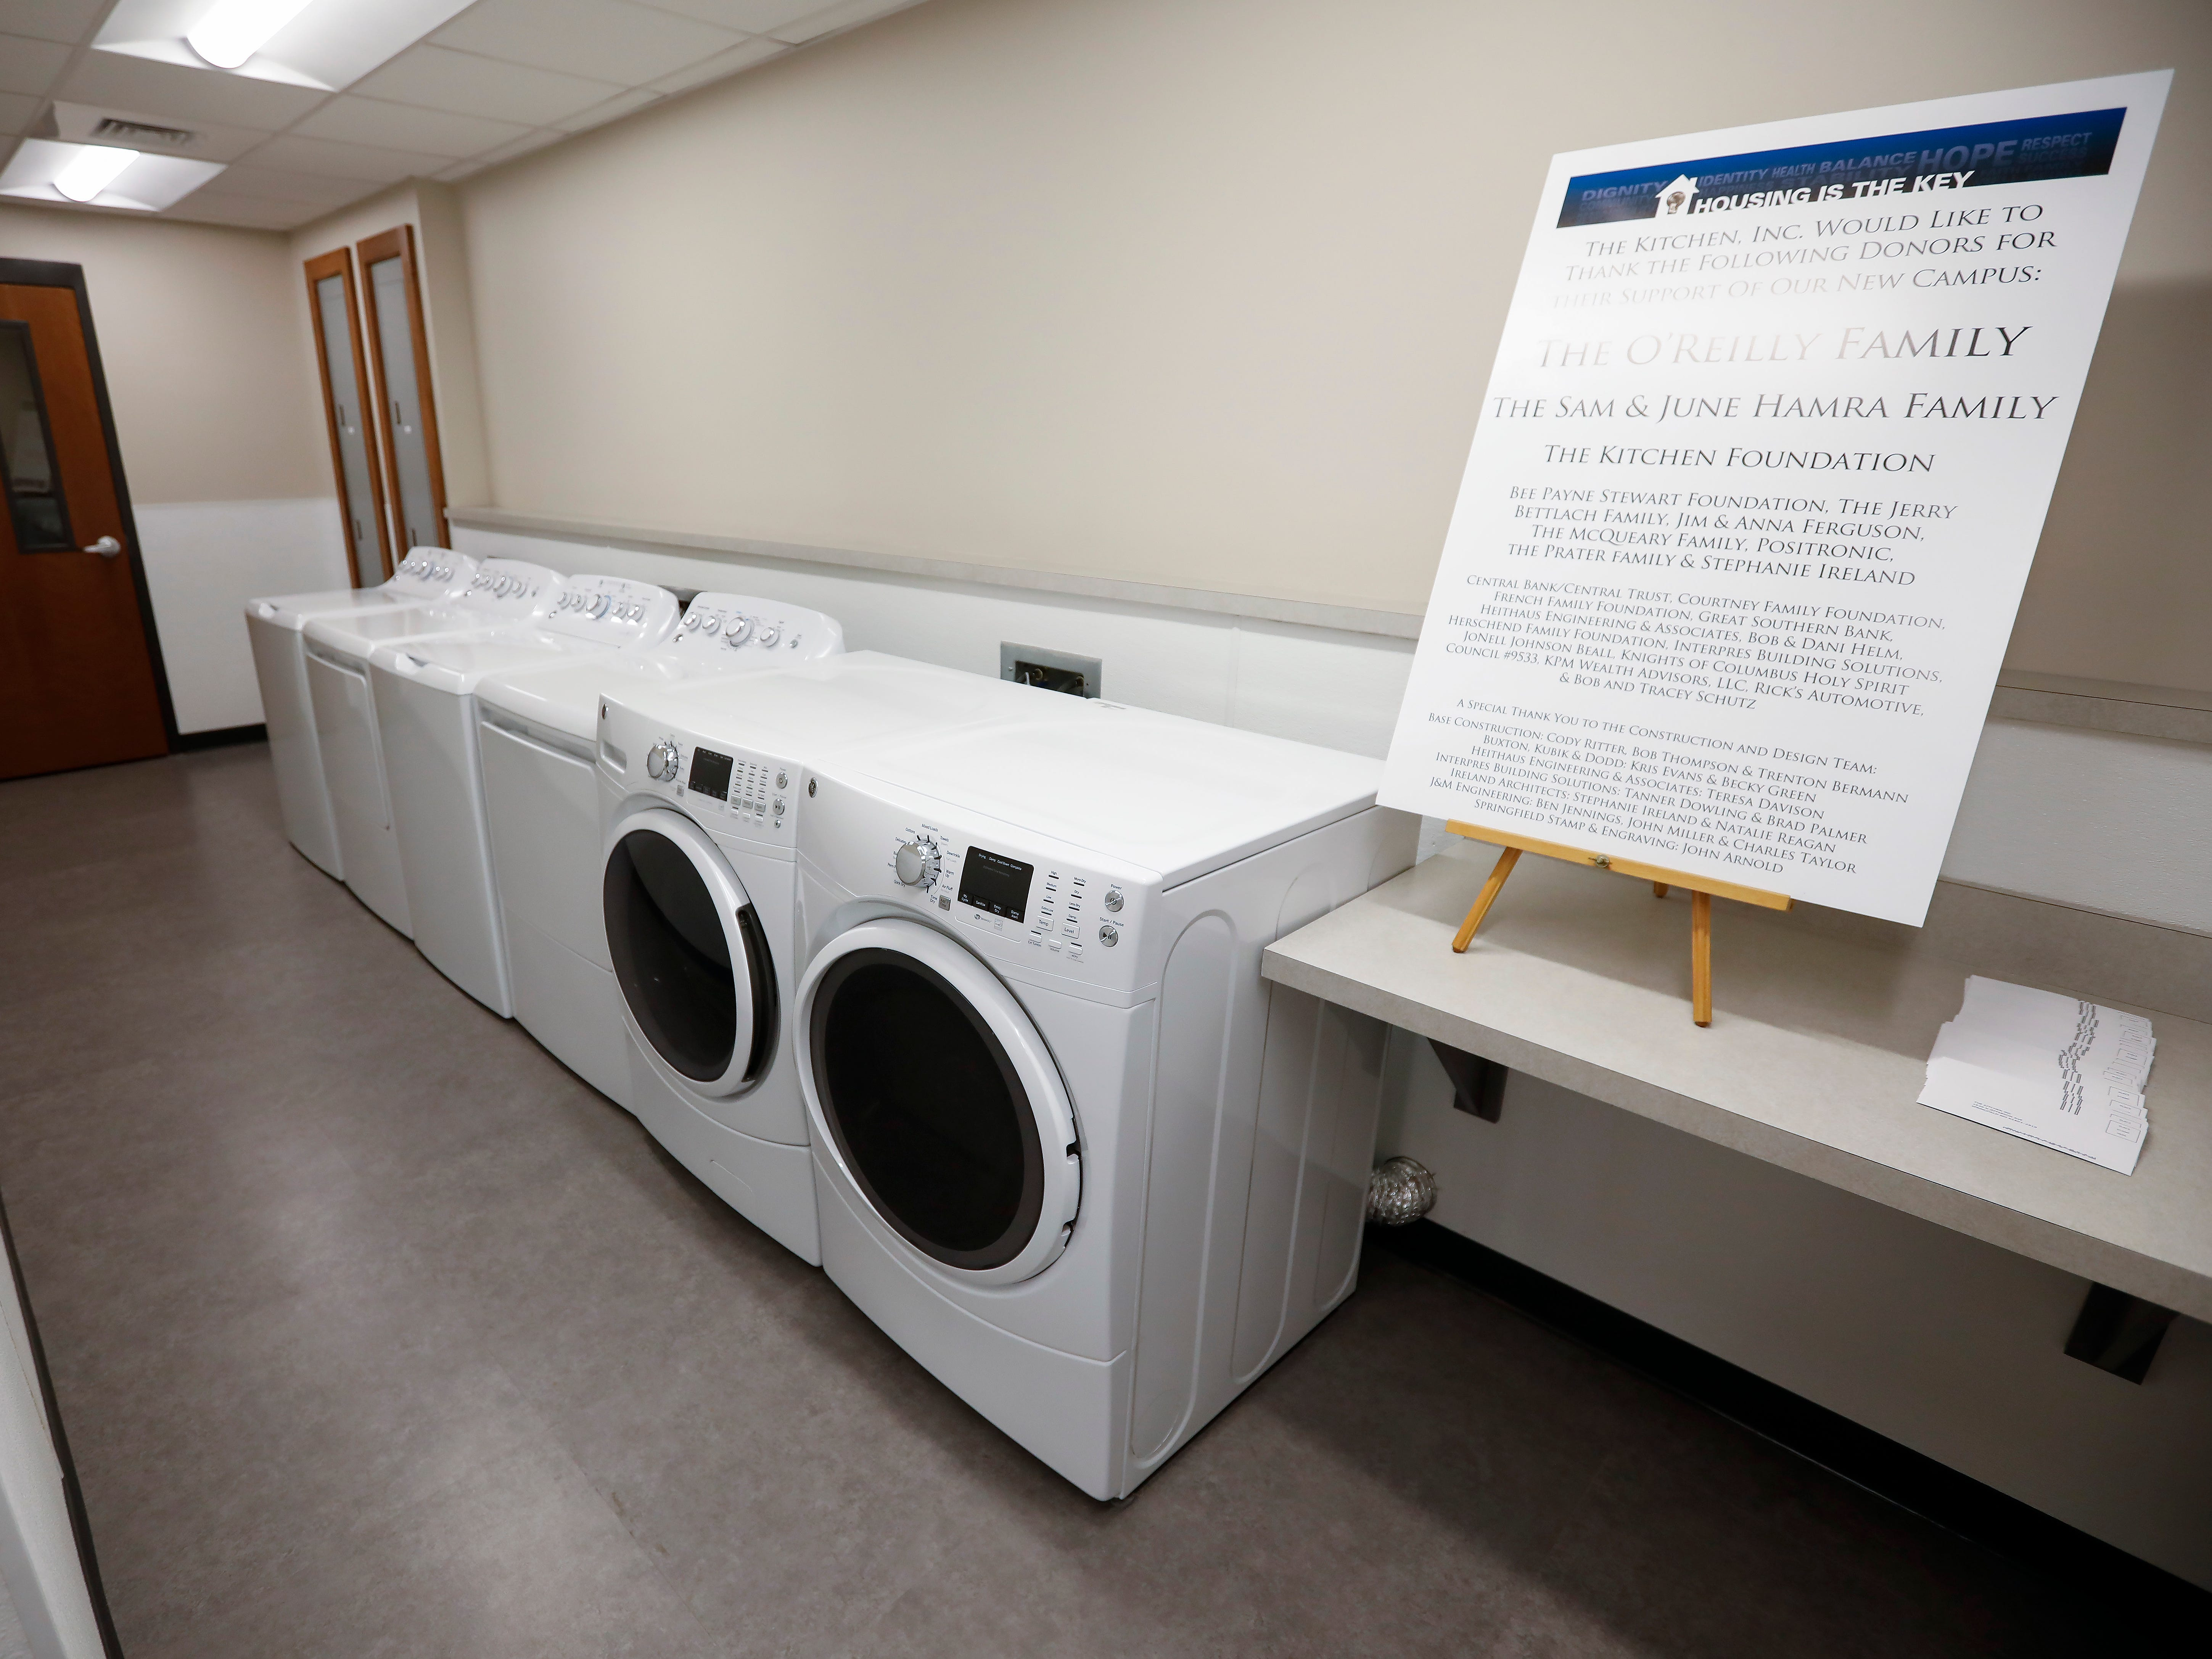 The laundry room inside of The Kitchen's new Emergency Shelter located at 1855 E. Chestnut Expressway.